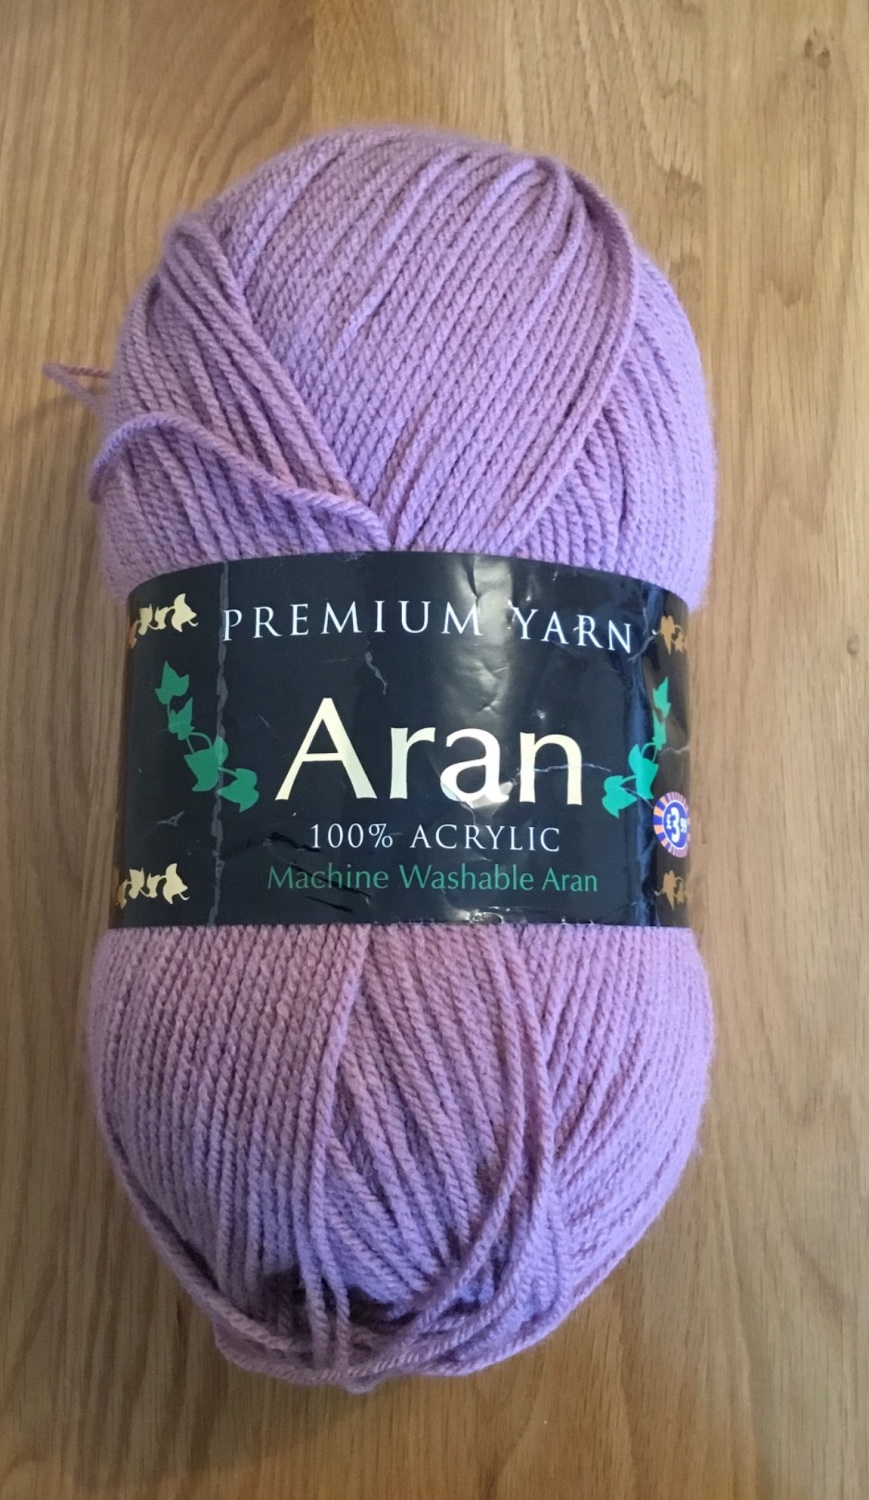 Premium yarn aran - light purple